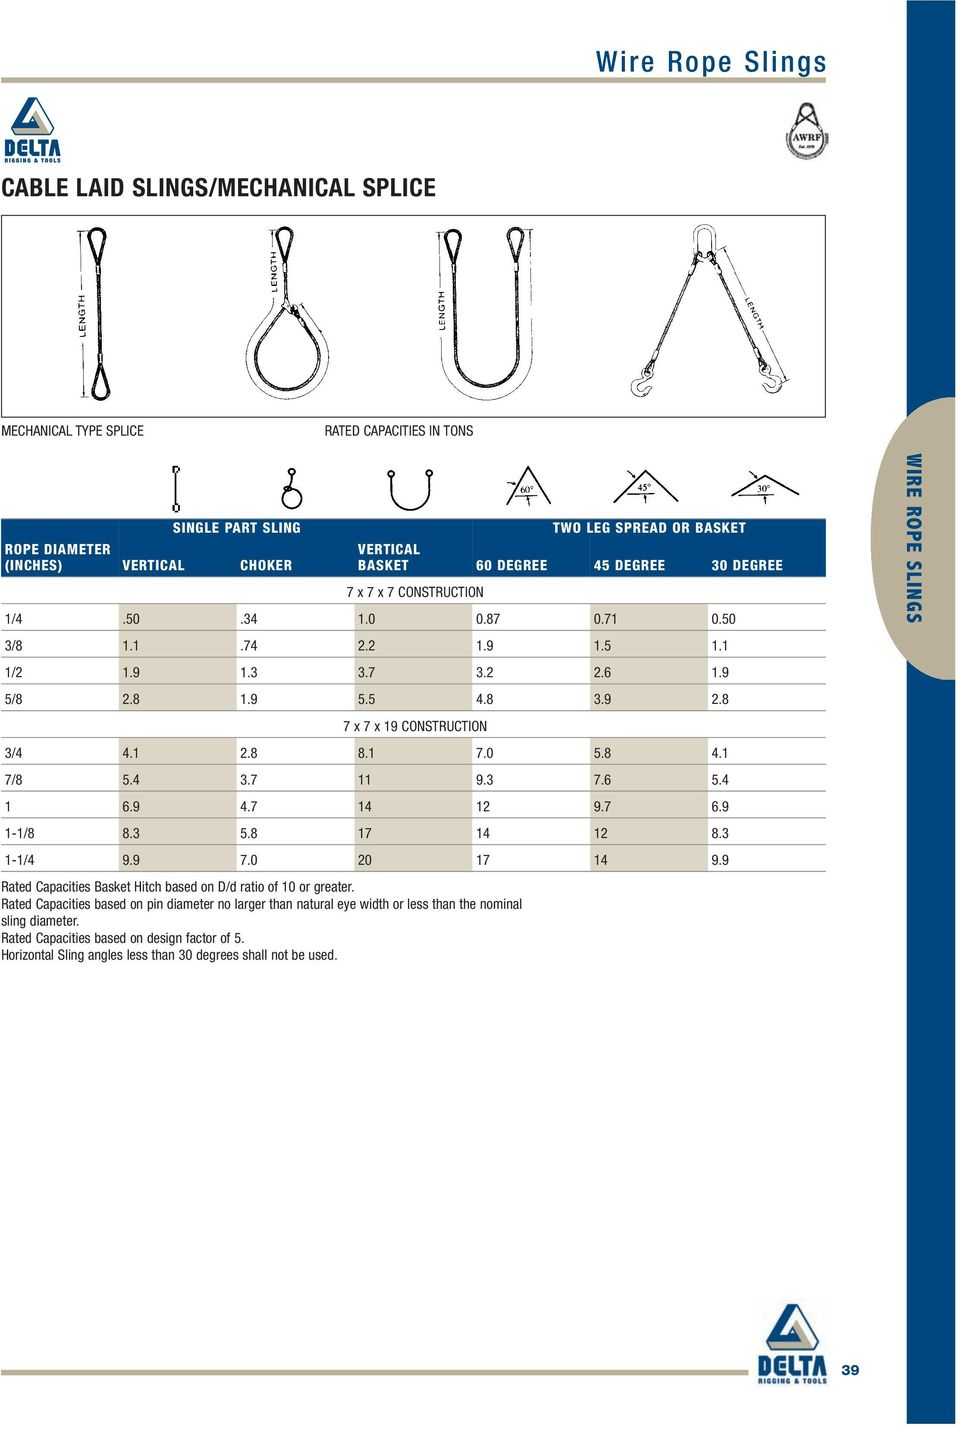 Wire Rope Slings Sling Leg Options Pdf Helical Harness Lay 1 7 8 54 37 11 93 76 69 47 14 12 97